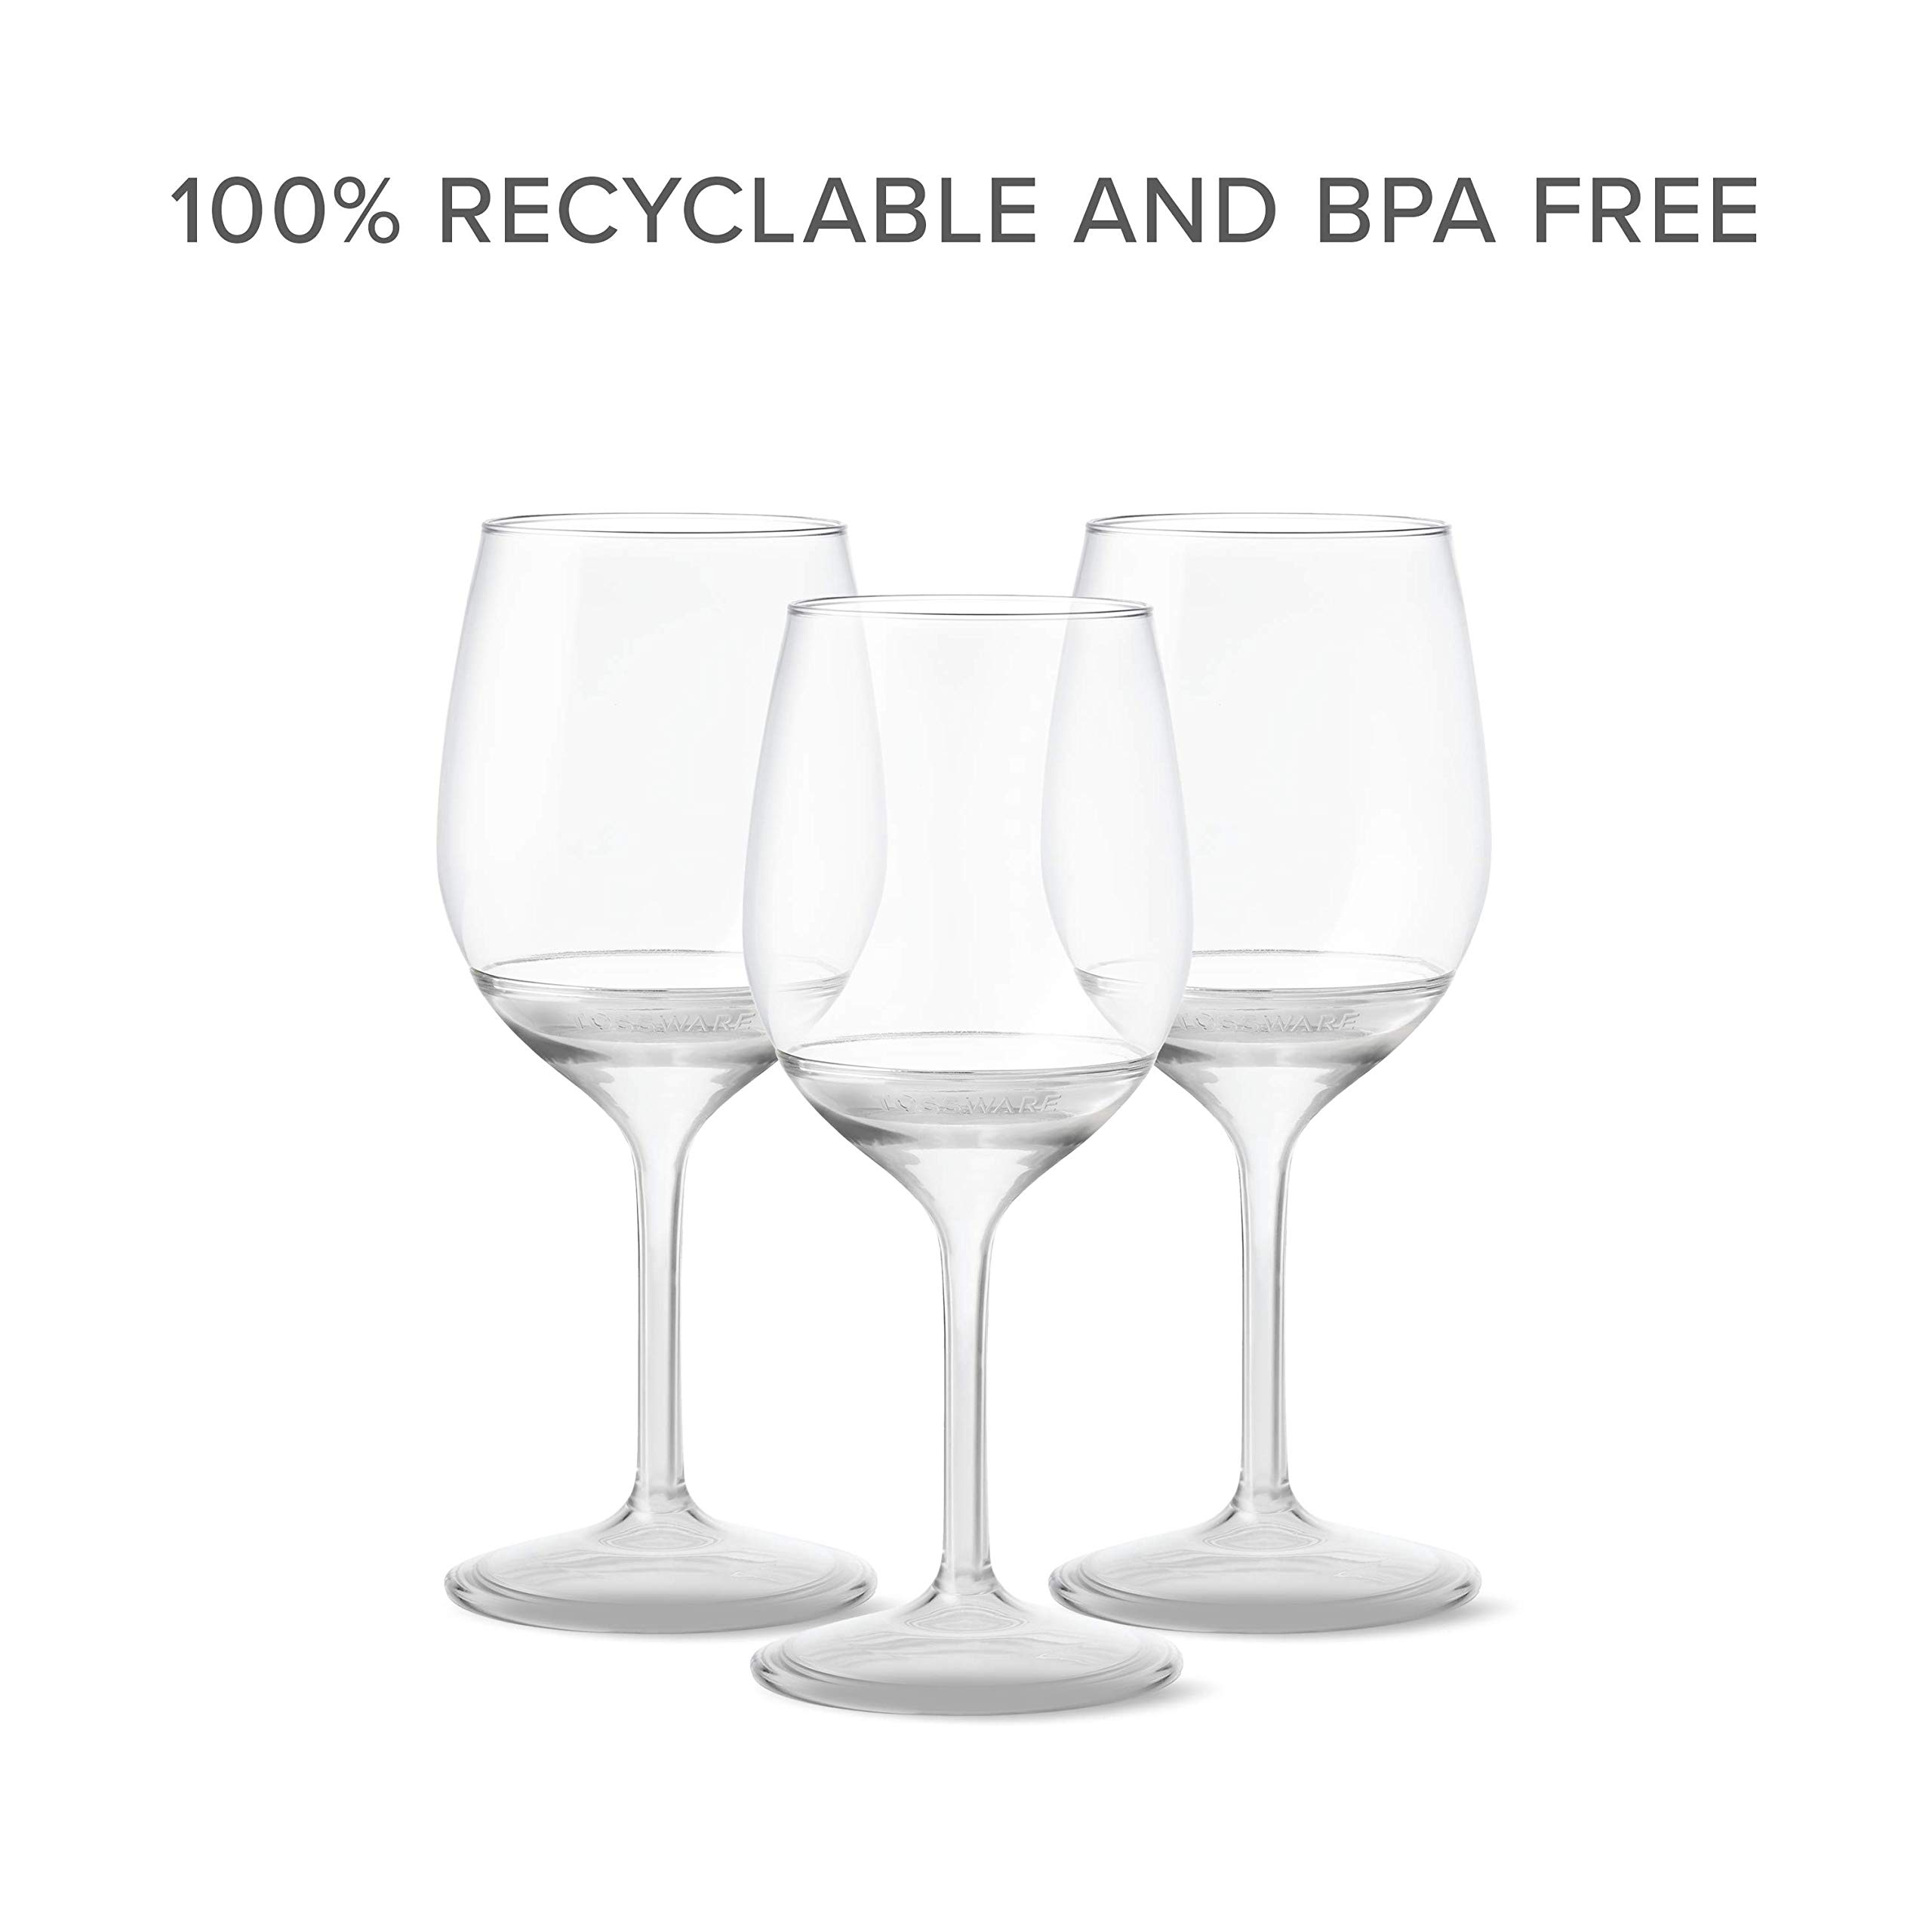 TOSSWARE 14oz Stemmed Vino- recyclable wine plastic cup -SET OF 12- detachable stem, shatterproof, and BPA-free wine glasses by TOSSWARE (Image #6)